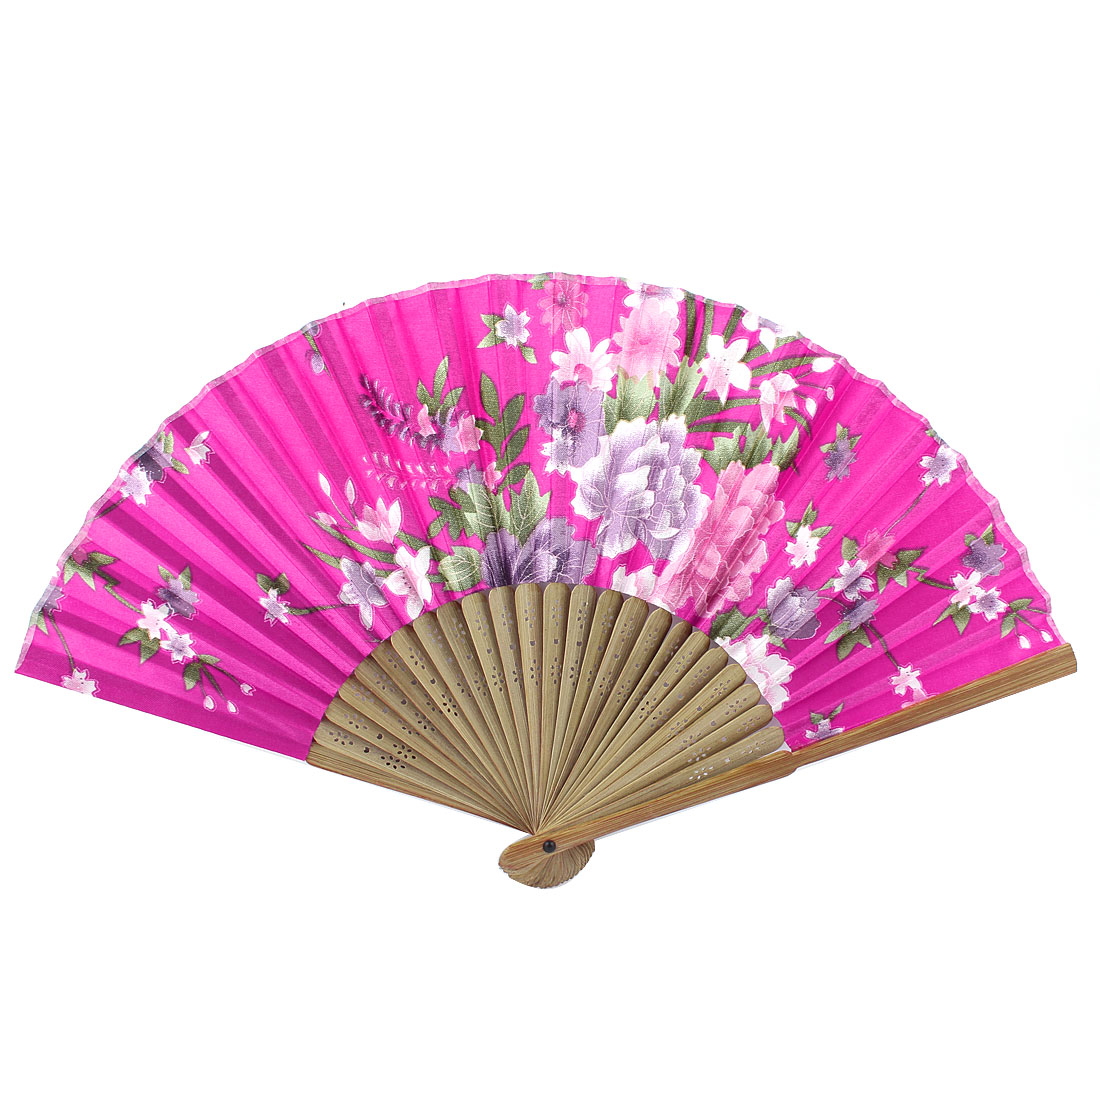 Fuchsia Beige Bamboo Ribs Flower Pattern Foldable Hand Fan